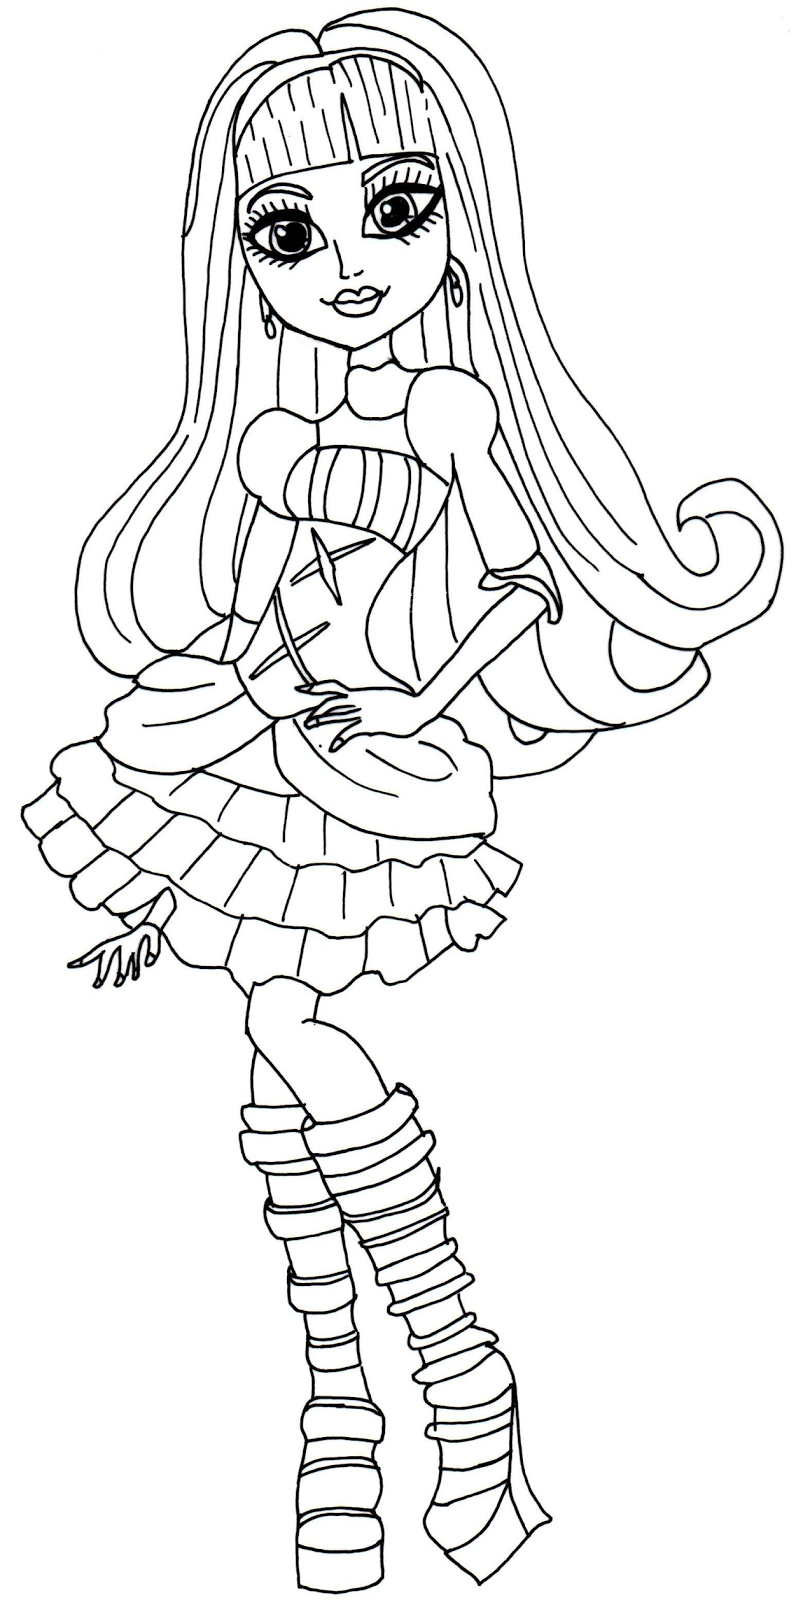 Free printable monster high coloring pages december 2013 for Monster high color pages free